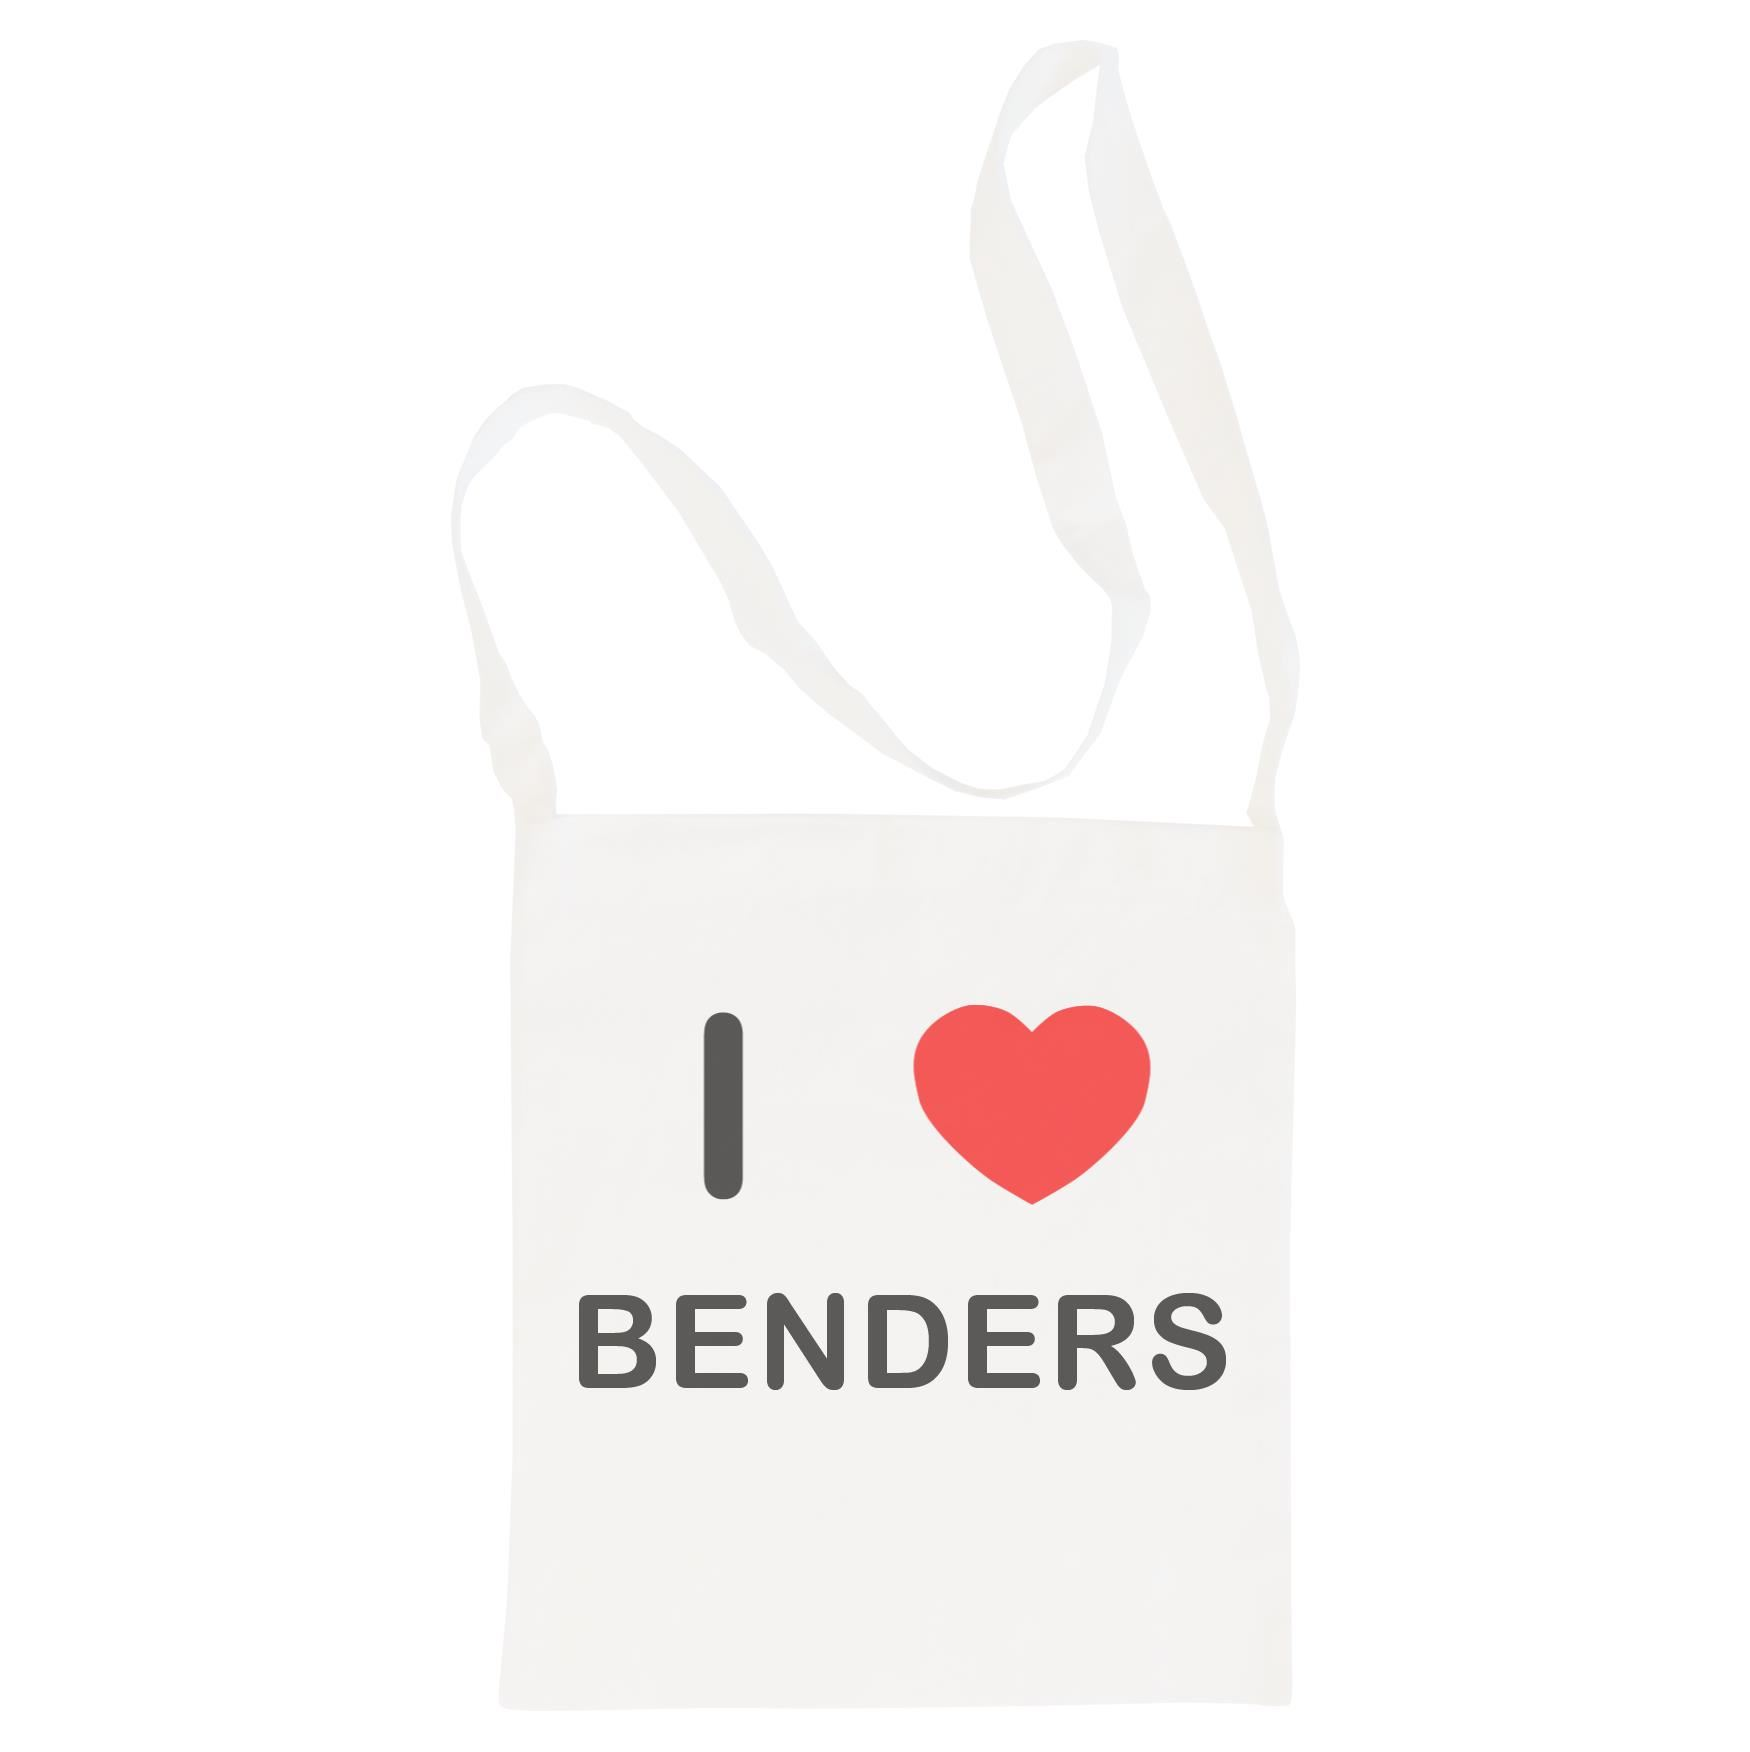 I Love Benders - Cotton Bag | Size choice Tote, Shopper or Sling